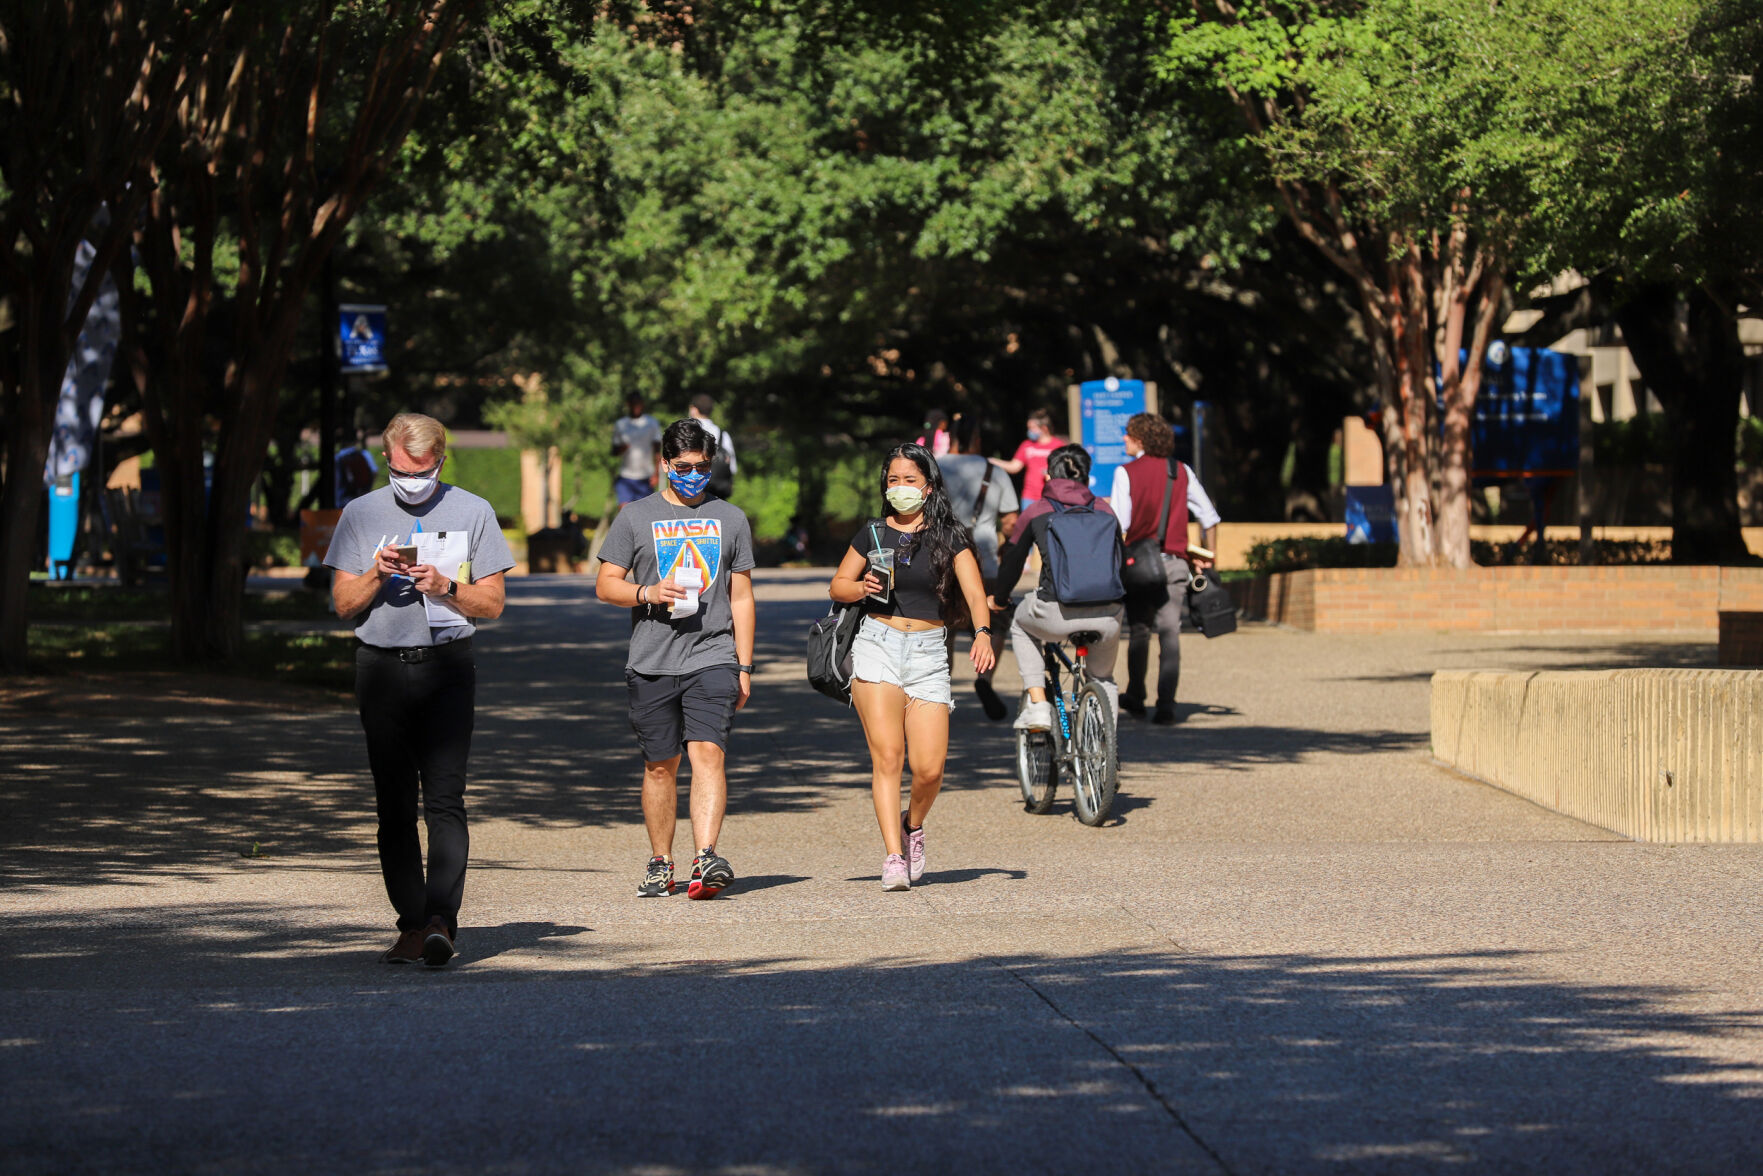 Photos: UTA students find changed campus amid social distancing guidelines, limited seating